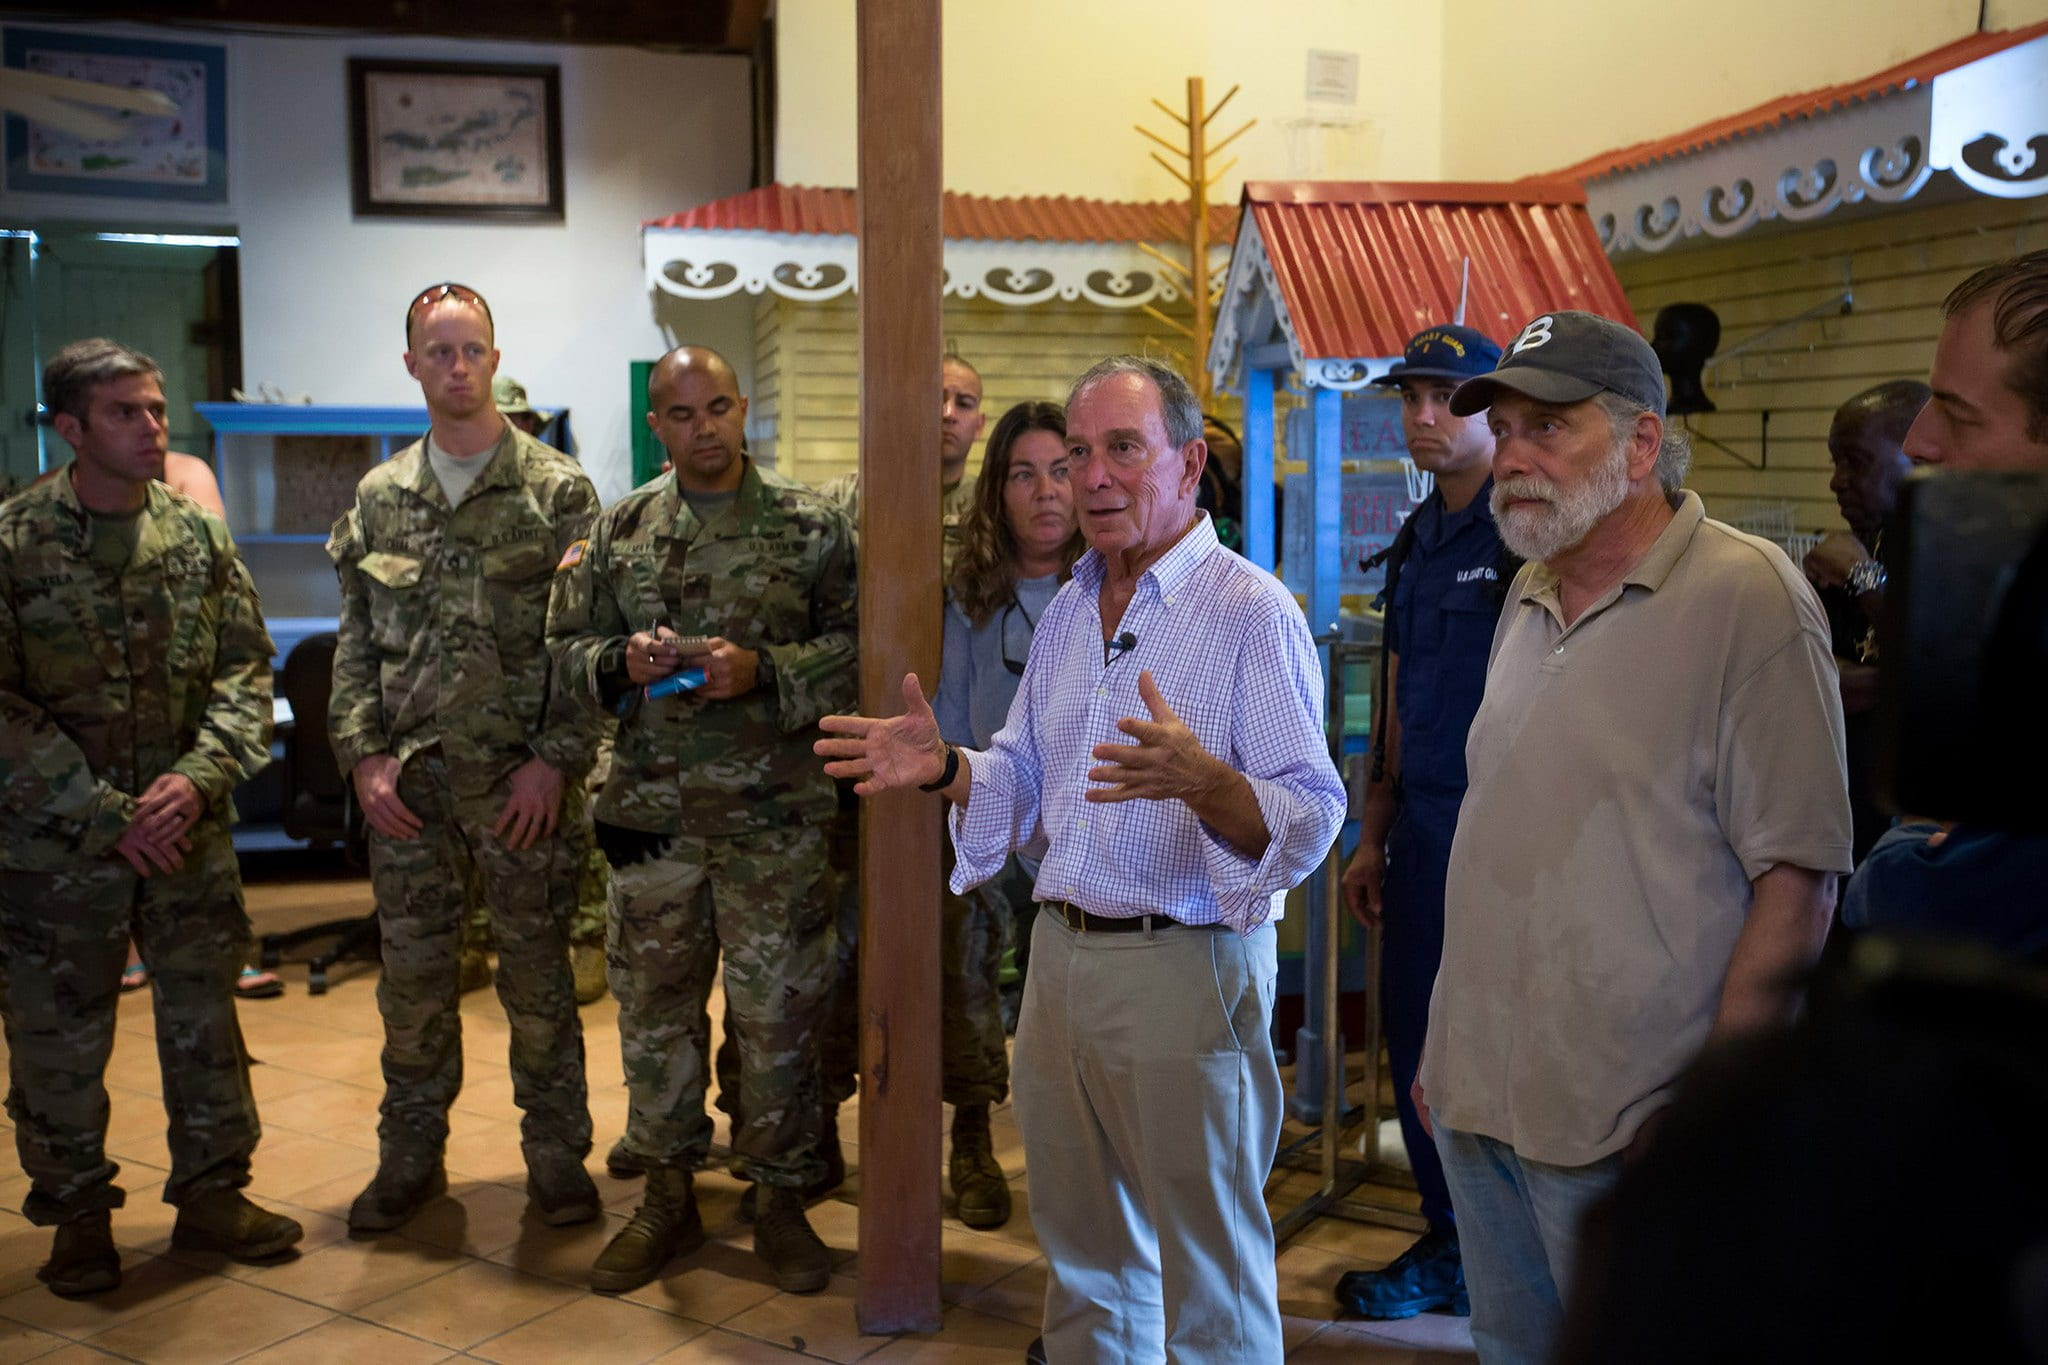 Mike Bloomberg speaks with local residents and troops in the U.S. Virgin Islands following Hurricanes Maria and Irma.